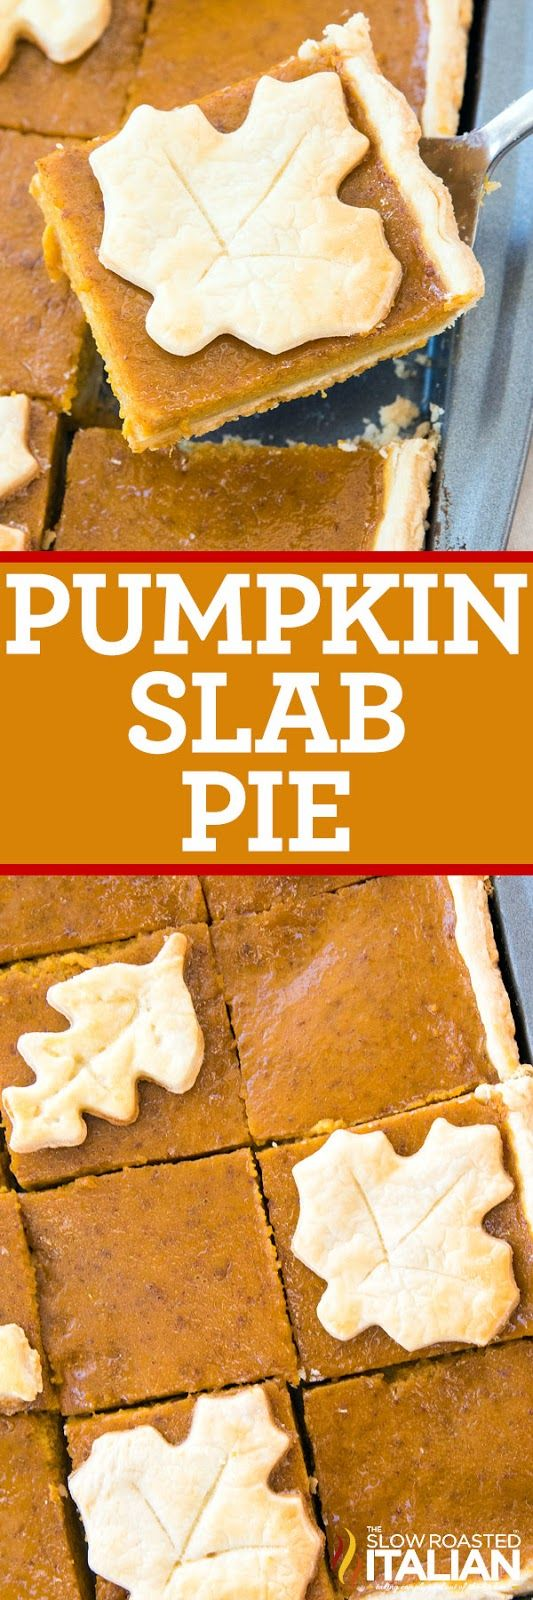 Pumpkin Slab Pie is the perfect fall dessert for a crowd! Creamy pumpkin pie on top of a buttery homemade crust, top it with whipped cream or serve a la mode!